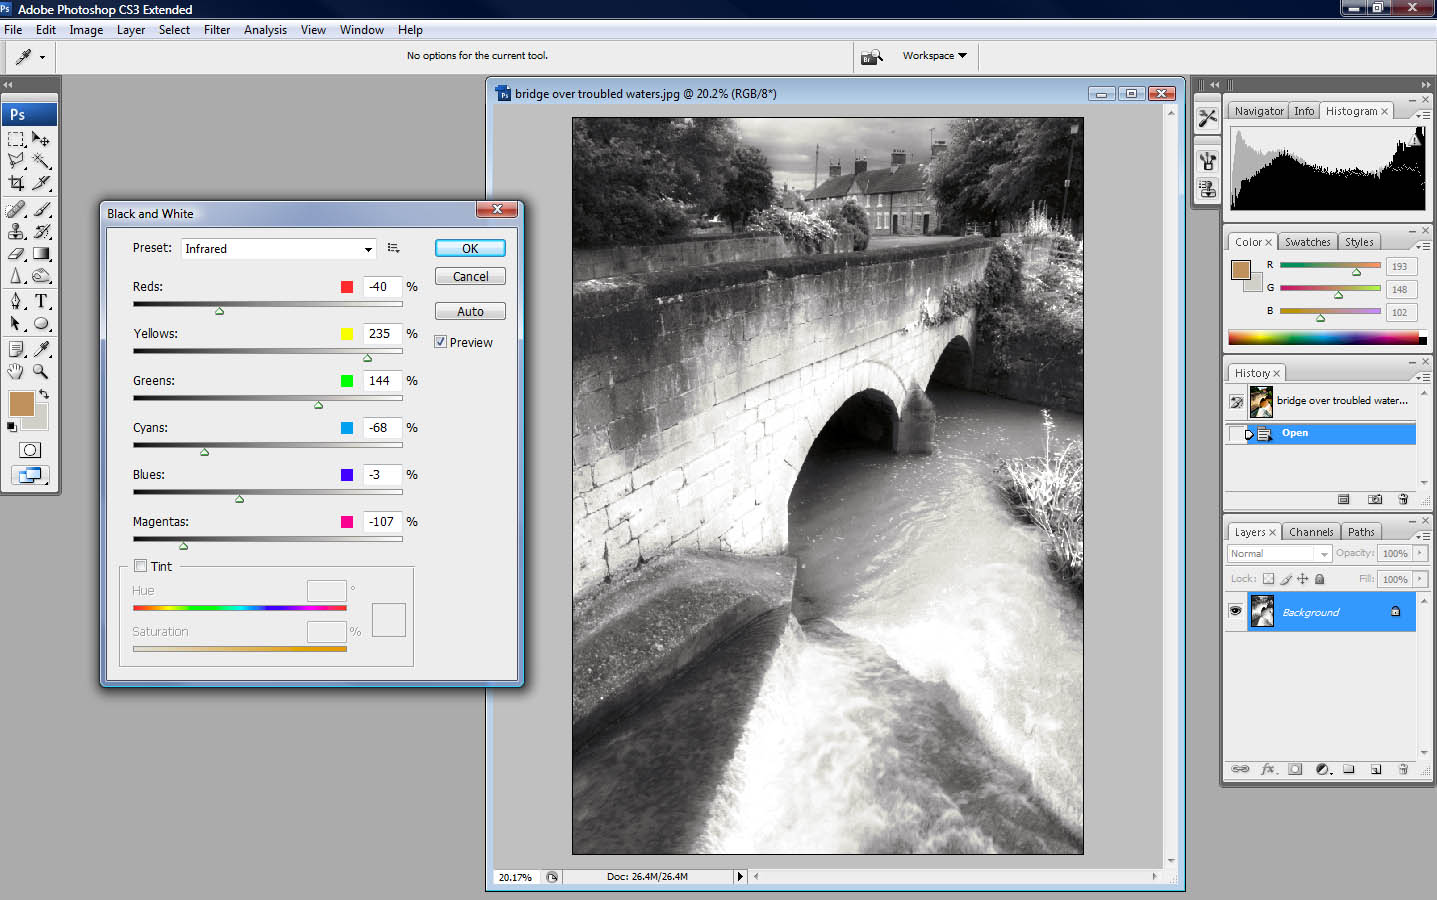 Adobe Photoshop CS3 Black and White filter | ePHOTOzine